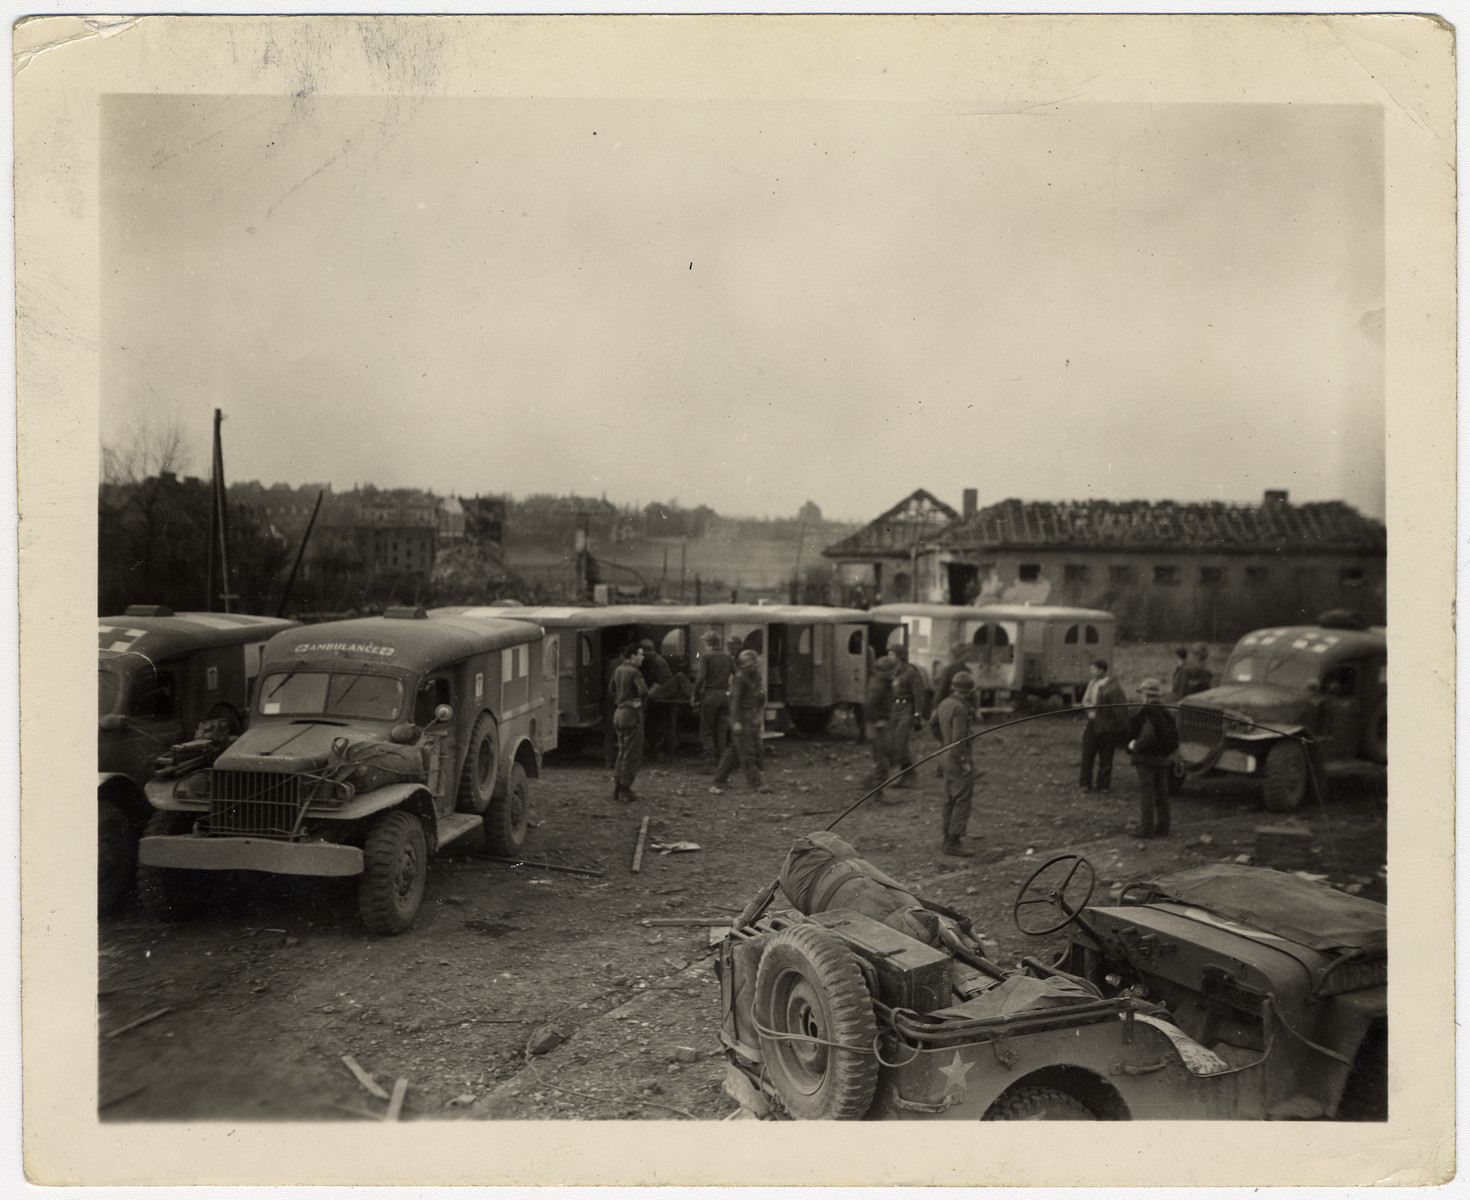 Trucks and ambulances line up to evacuate survivors of the Nordhausen concentration camp.